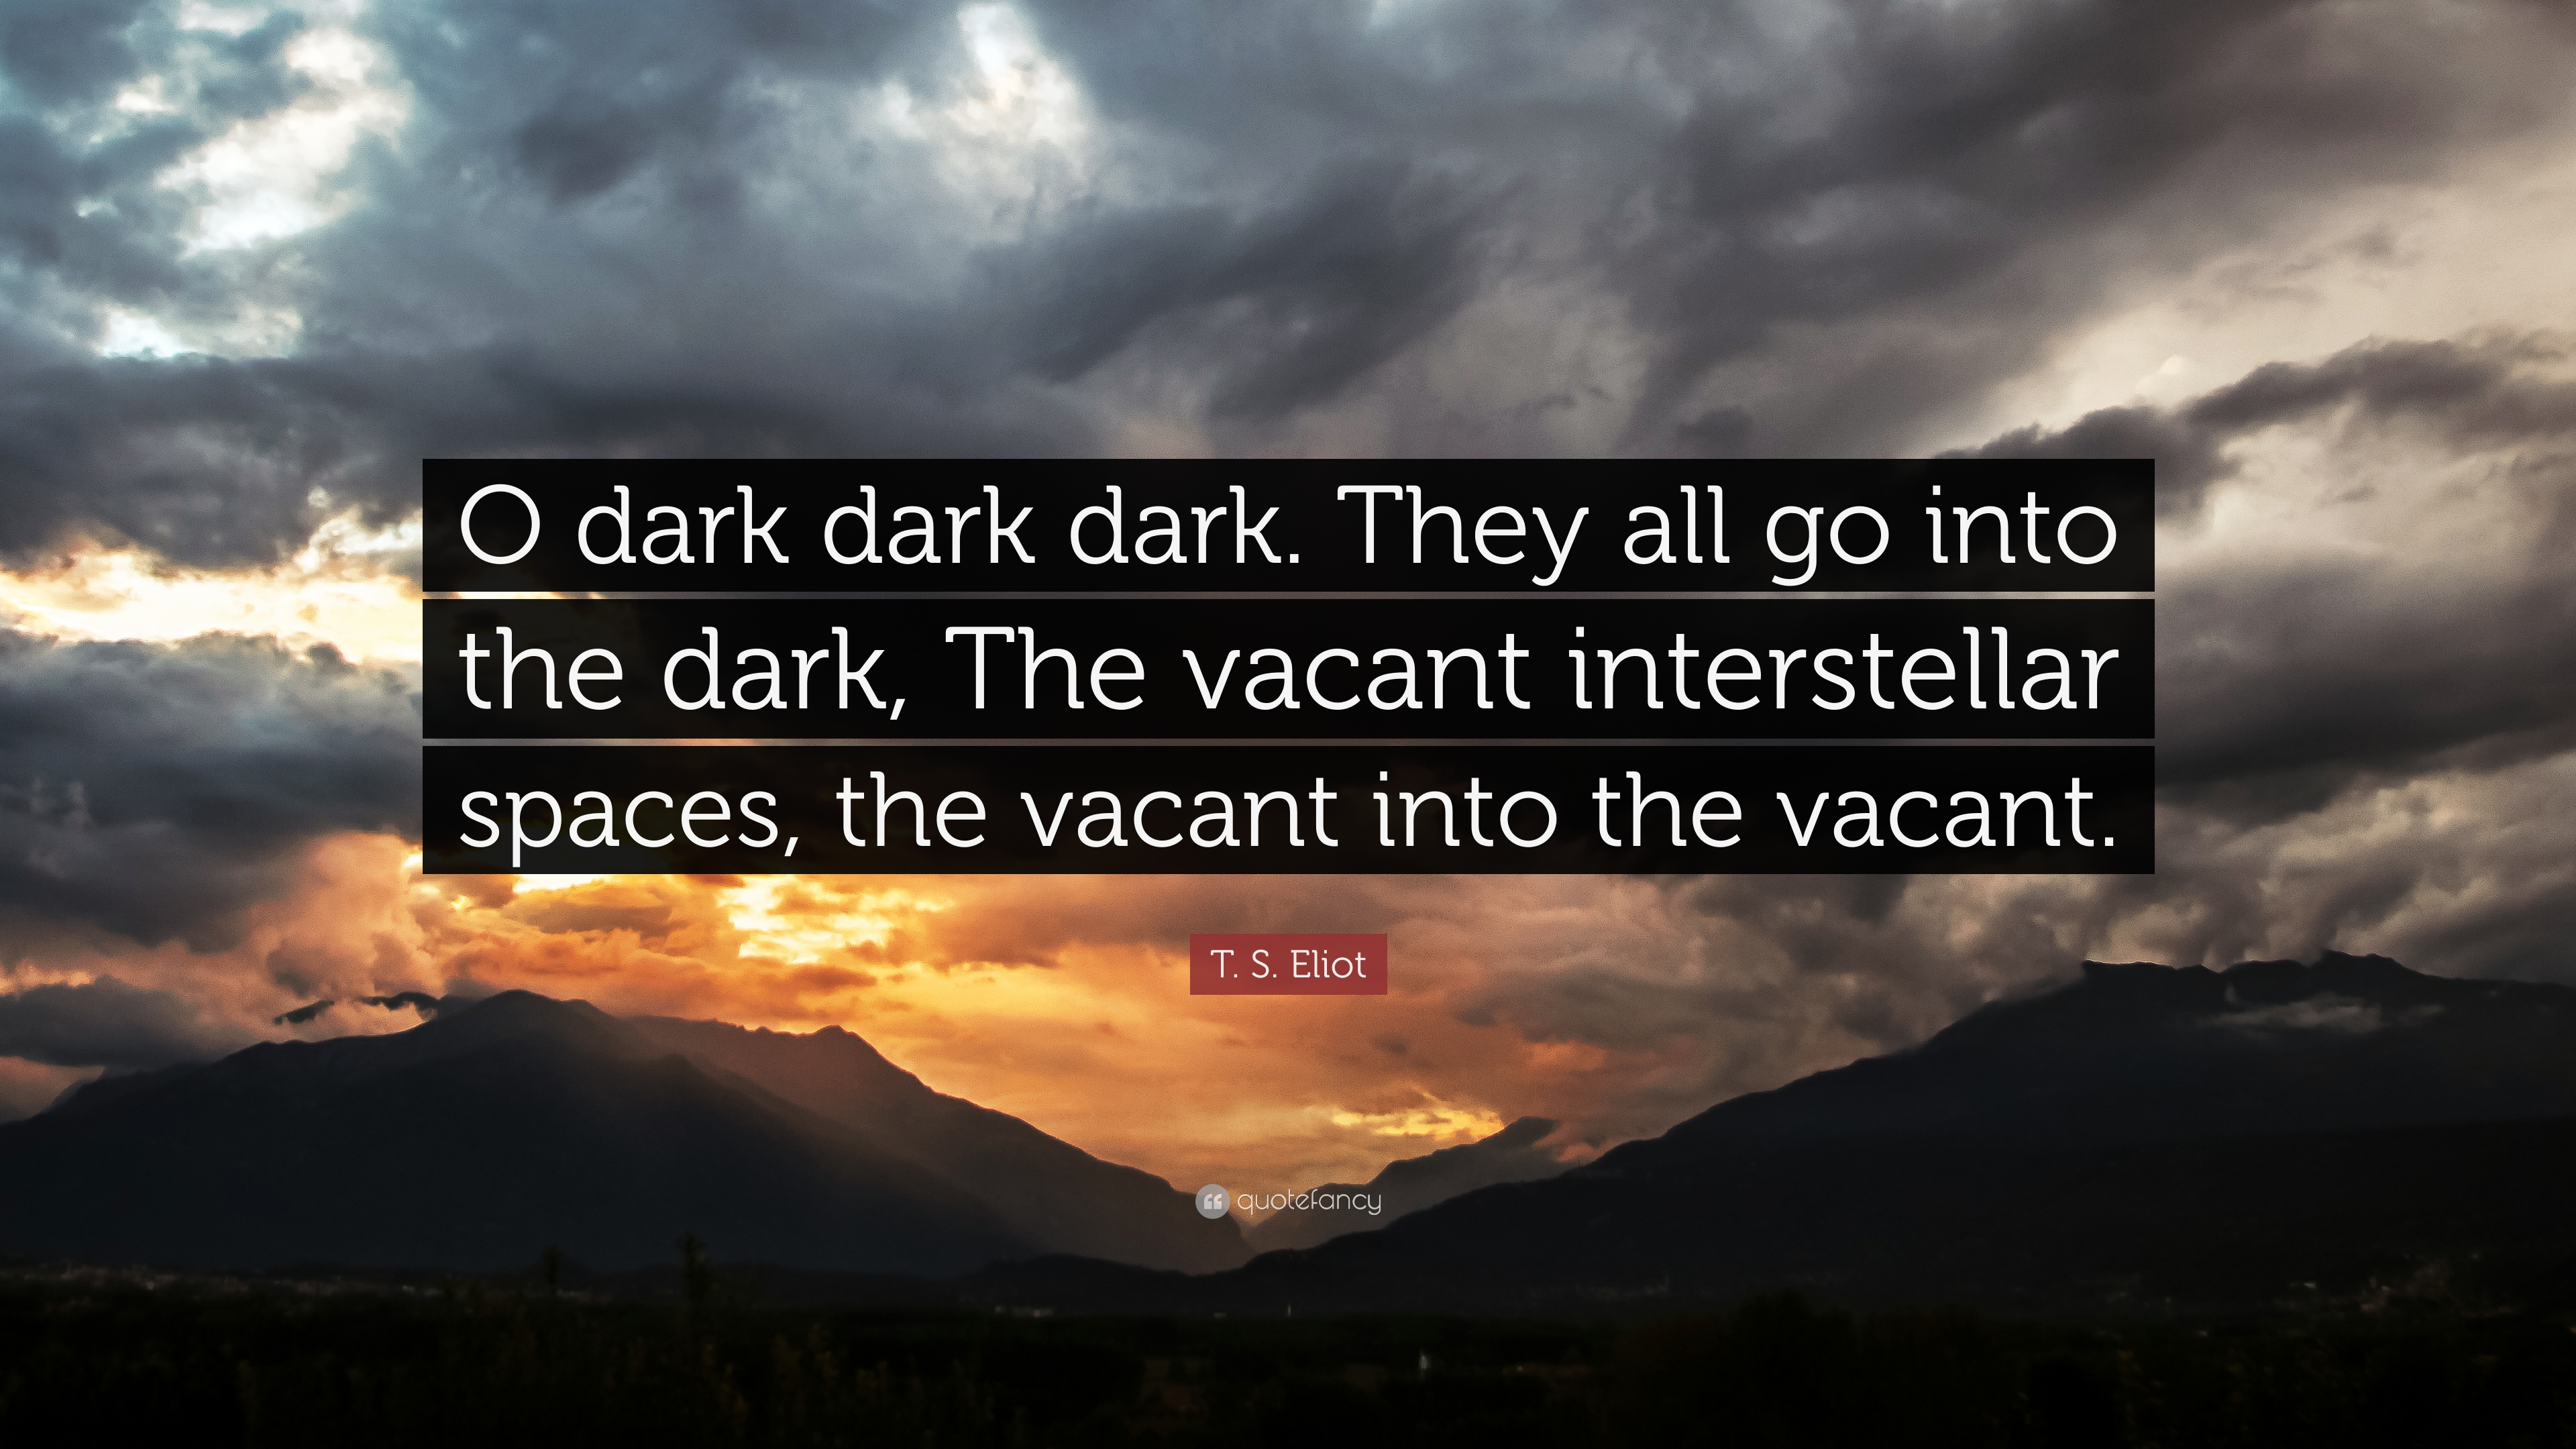 Cool Wallpaper Mountain Interstellar - 235104-T-S-Eliot-Quote-O-dark-dark-dark-They-all-go-into-the-dark-The  You Should Have_689557.jpg